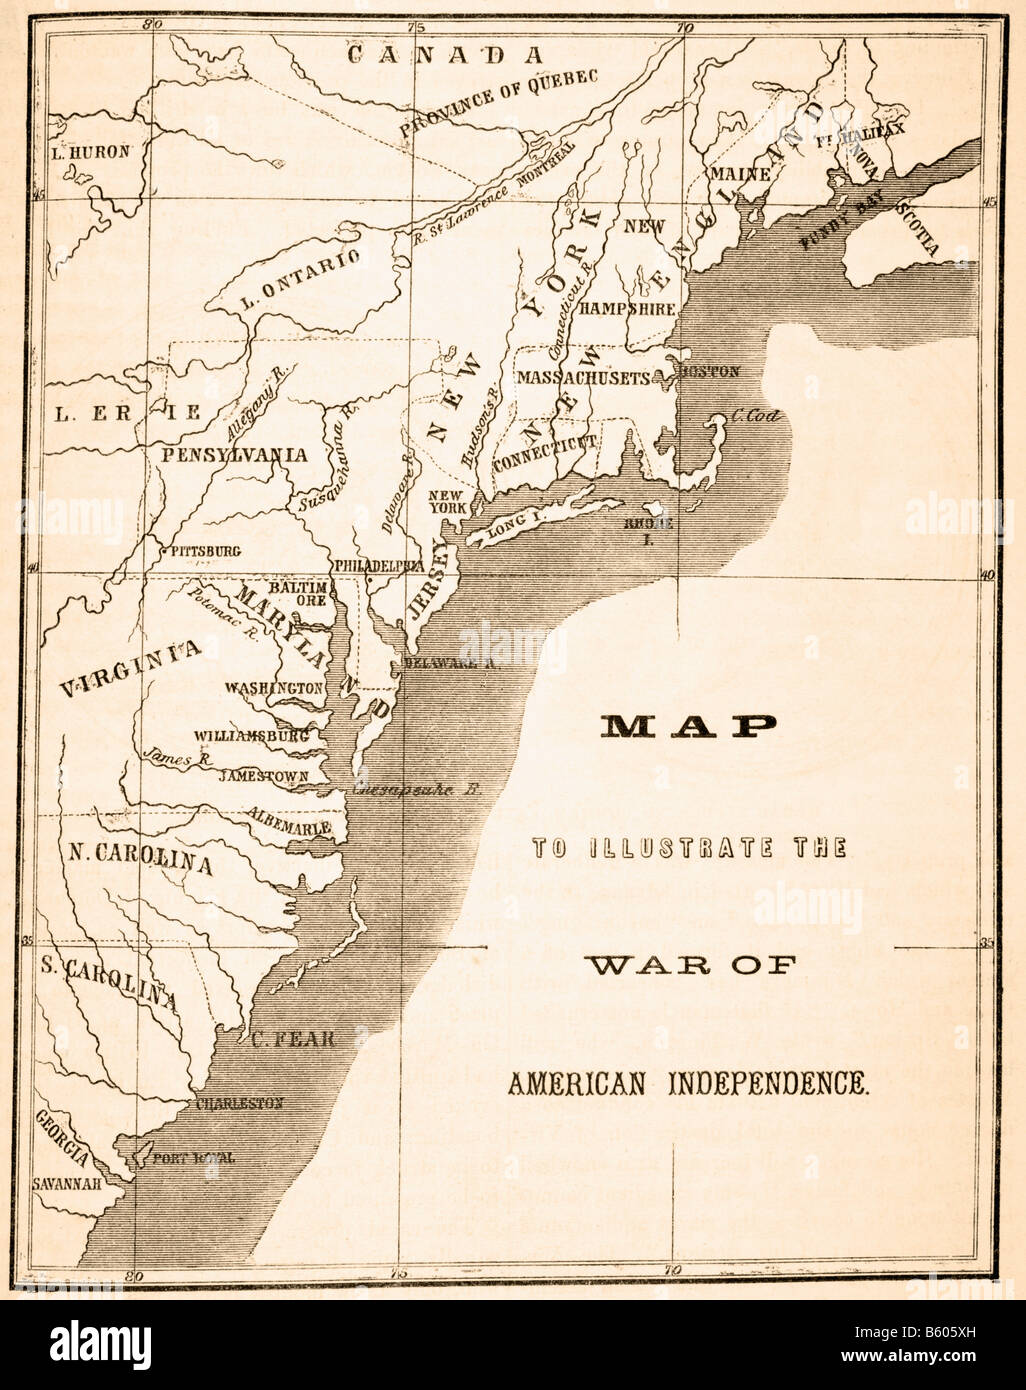 Map illustrating geography pertinent to the American War of Independence - Stock Image